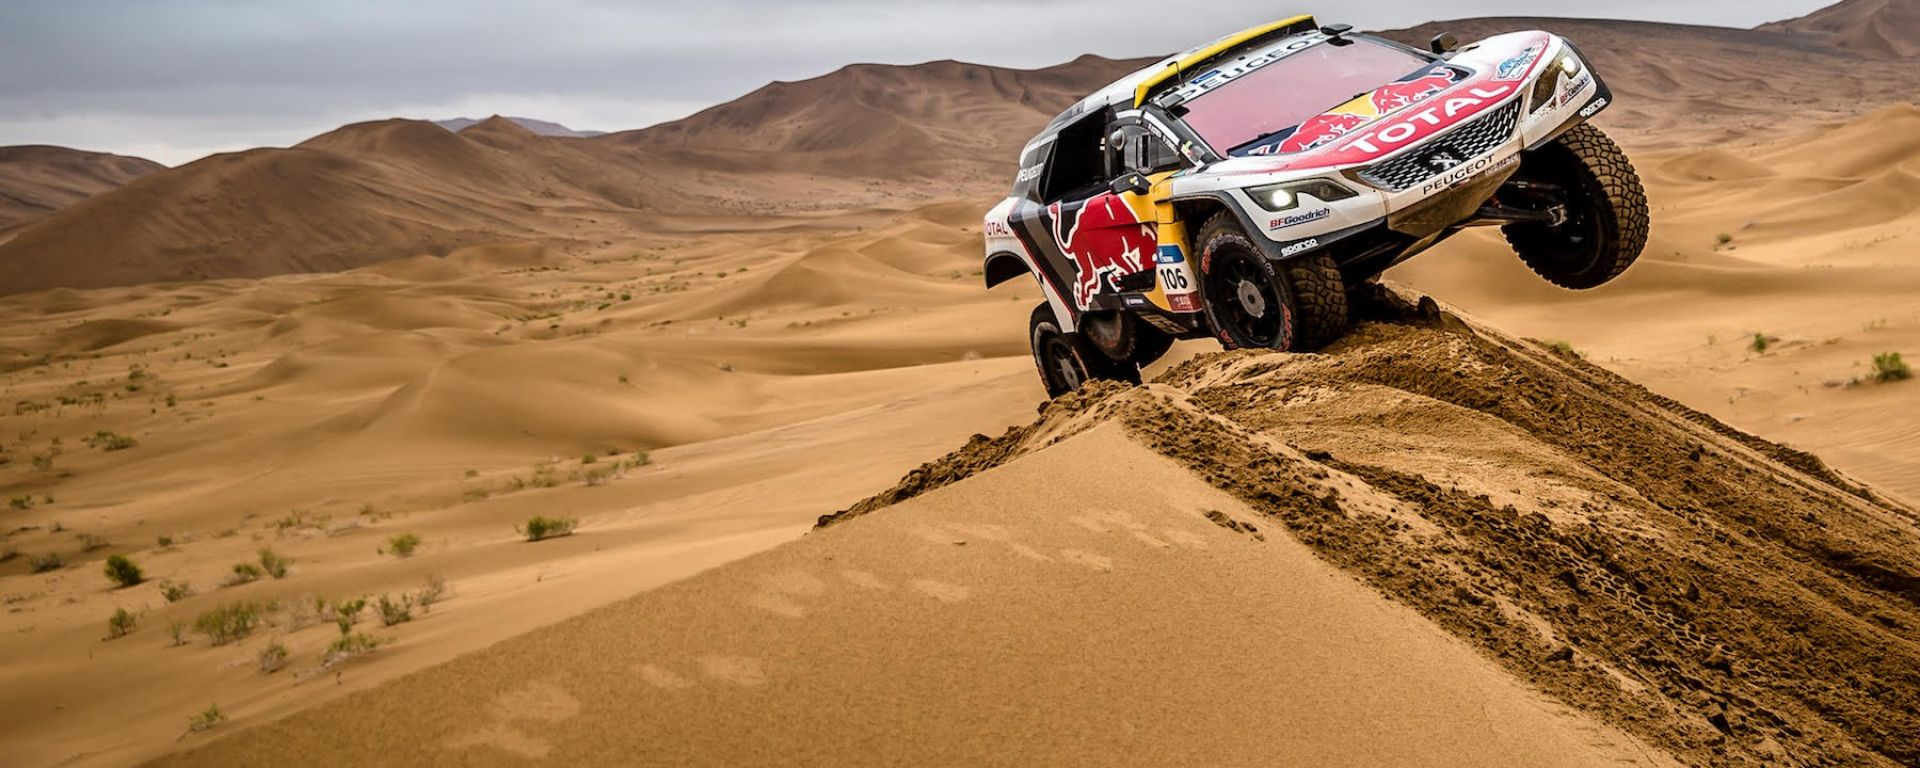 Peugeot 3008 DKR - Peugeot Sport Total, Silk Way Rally